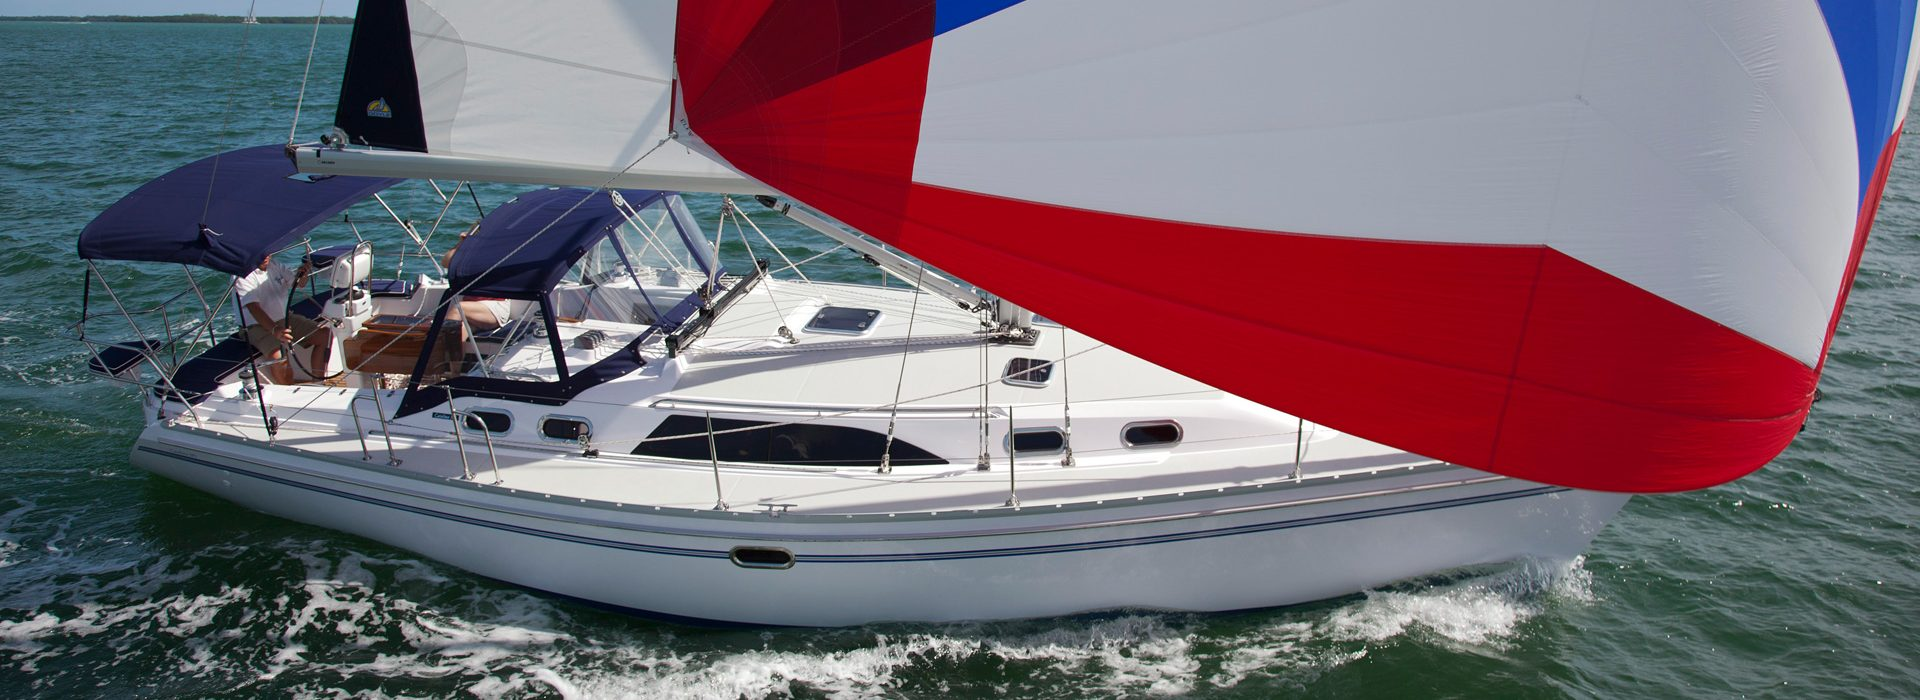 Catalina yachts 385 full sail